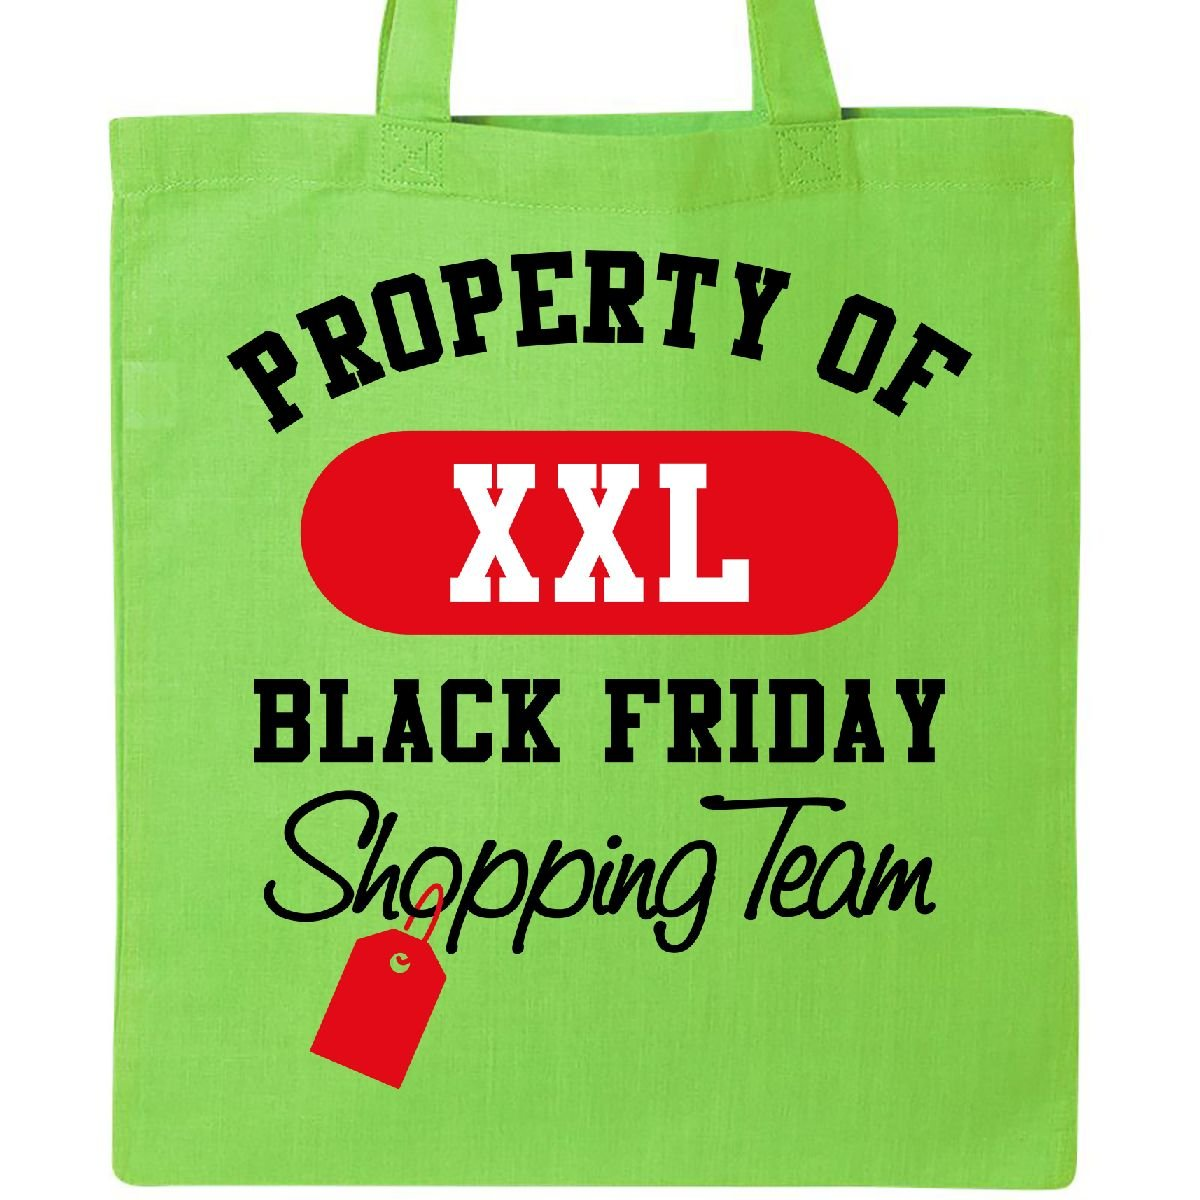 Inktastic – Black Friday Shopping Teamトートバッグ One Size B076XXQHS2  ライムグリーン